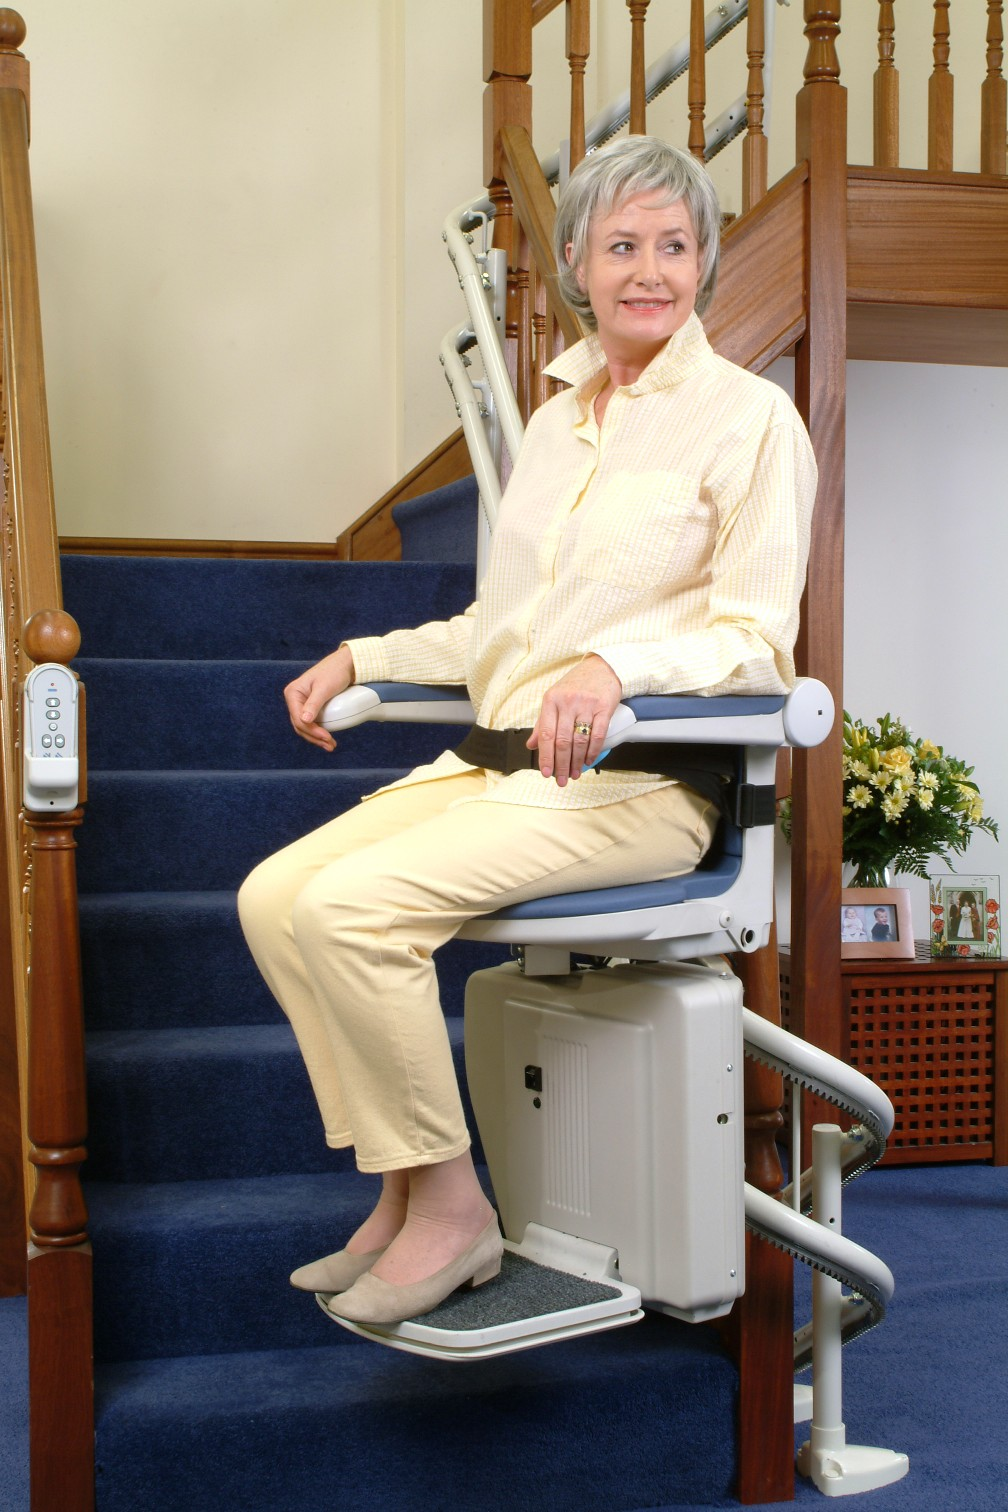 used stair lifts for sale, stairlifts reviews, used stair lift, handicapped stair lift